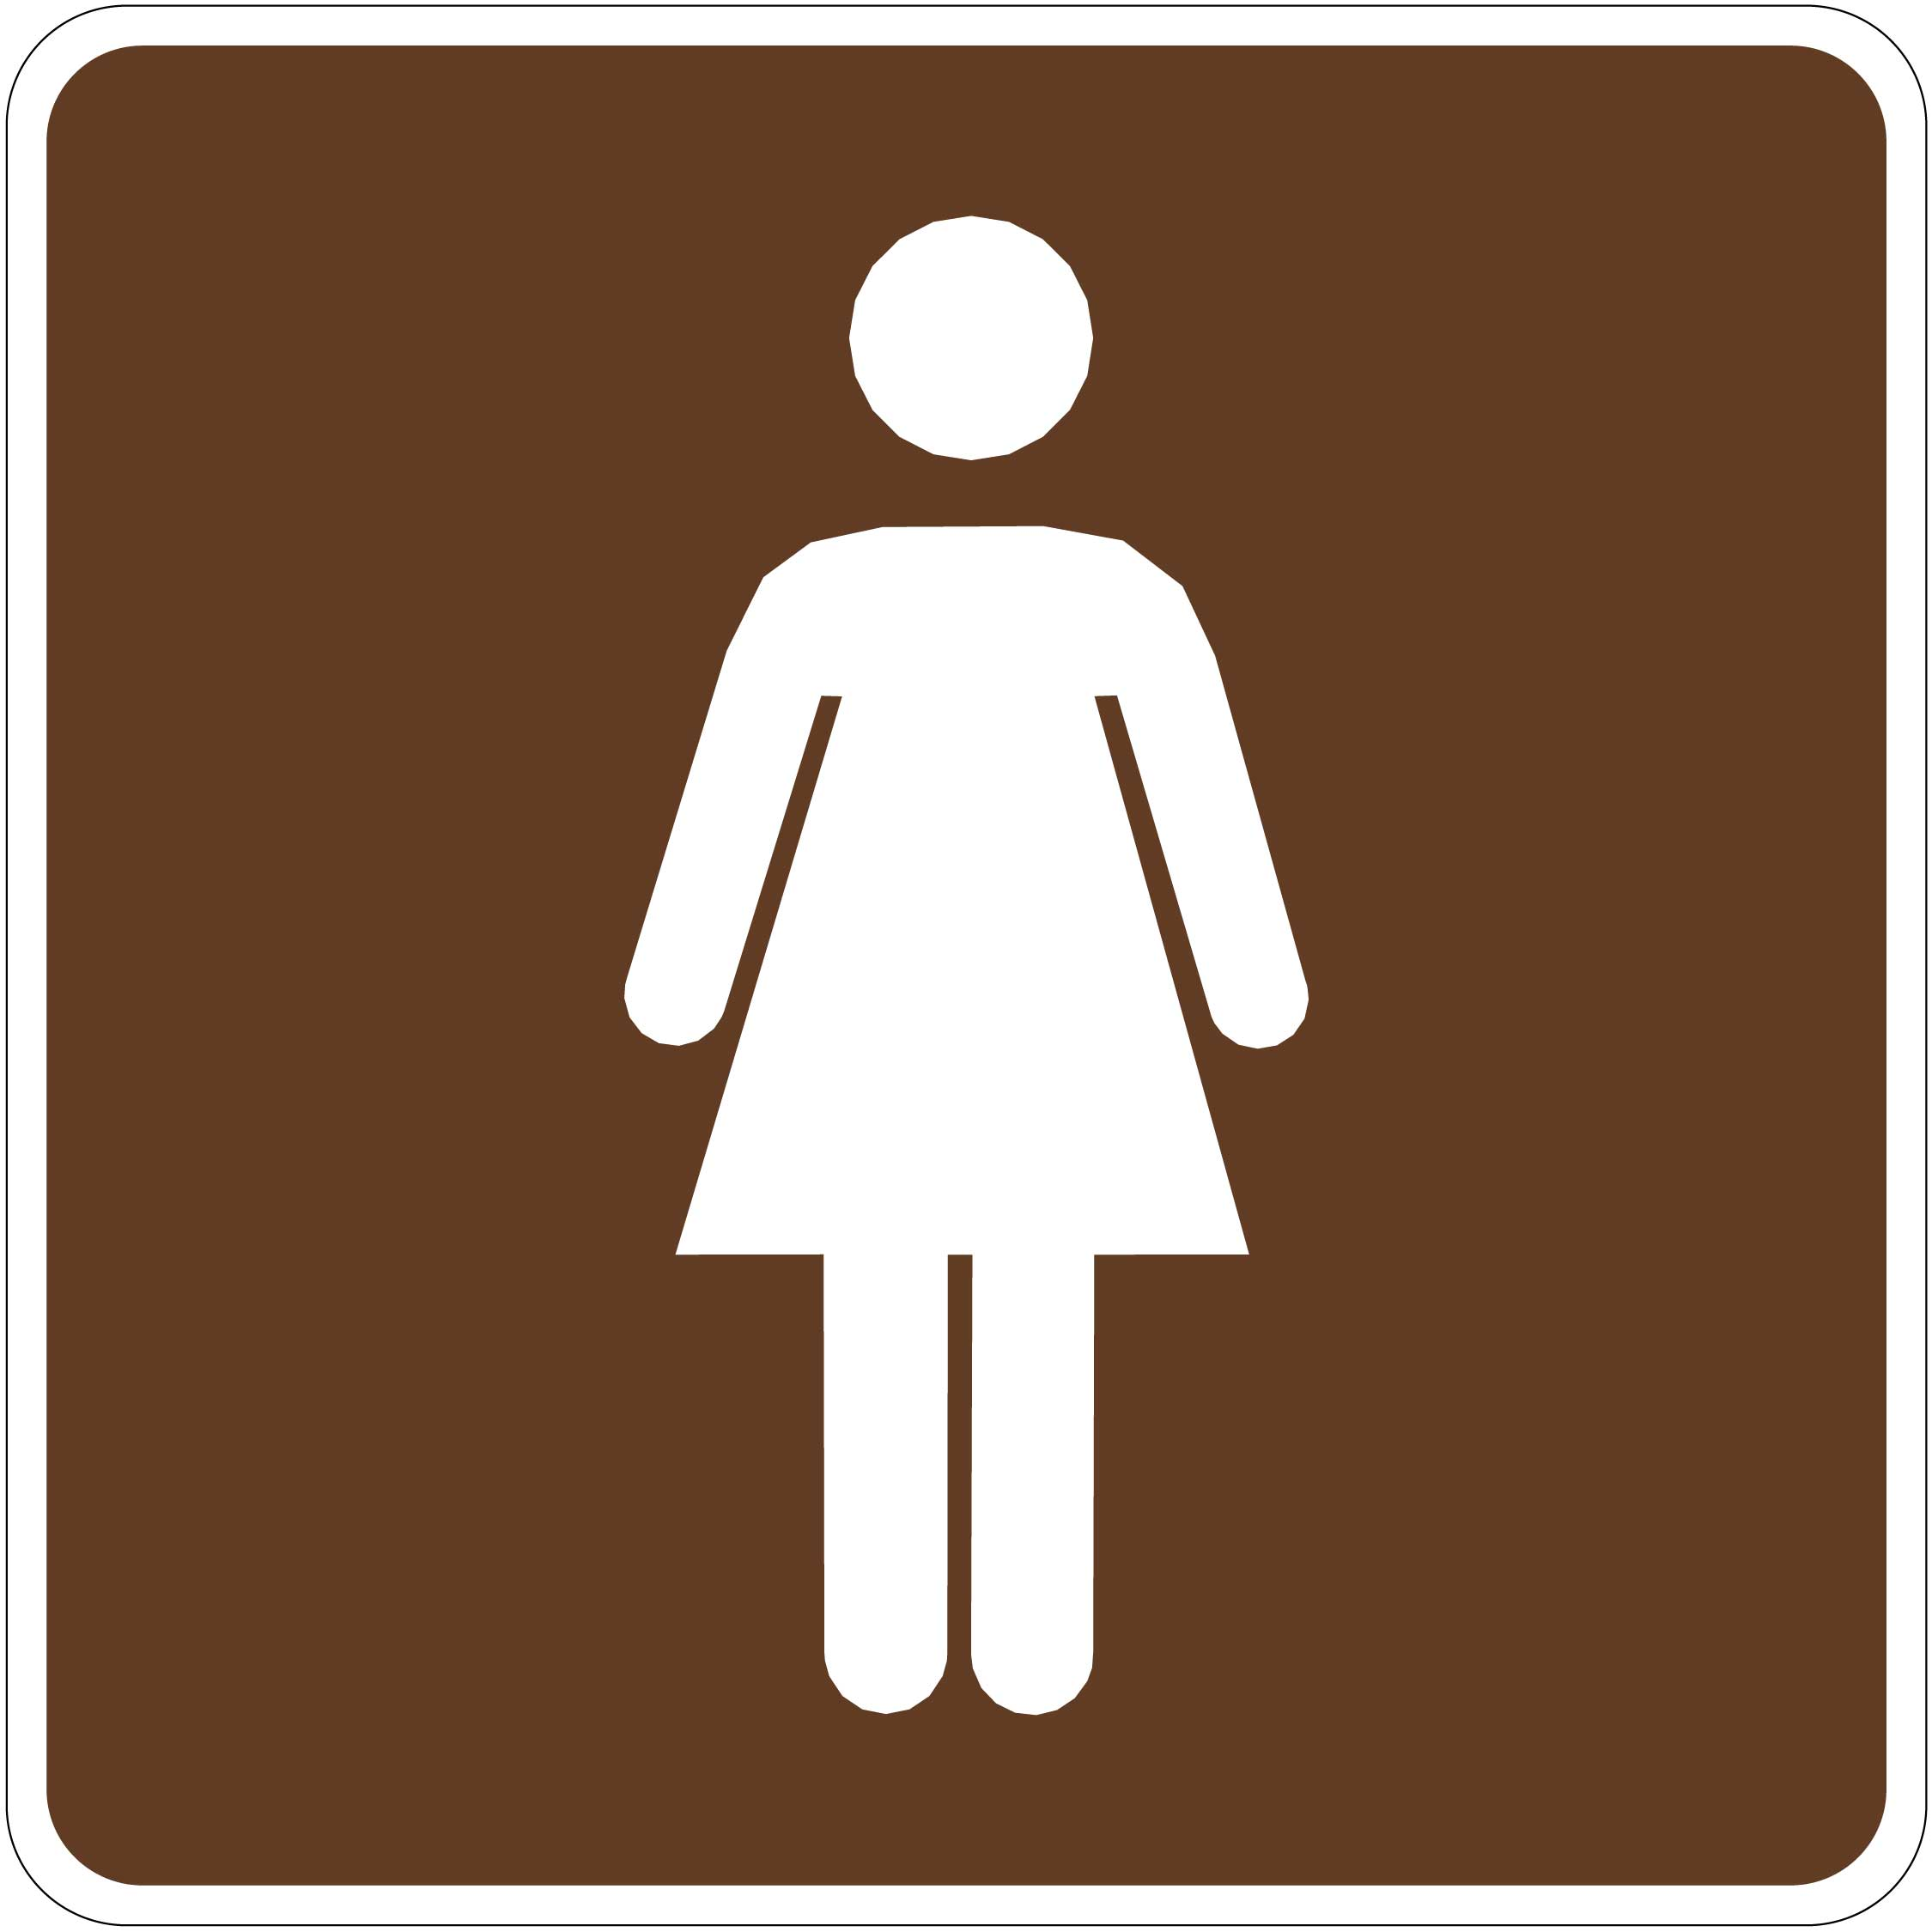 19 Womens Bathroom Symbol Free Cliparts That You Can Download To You